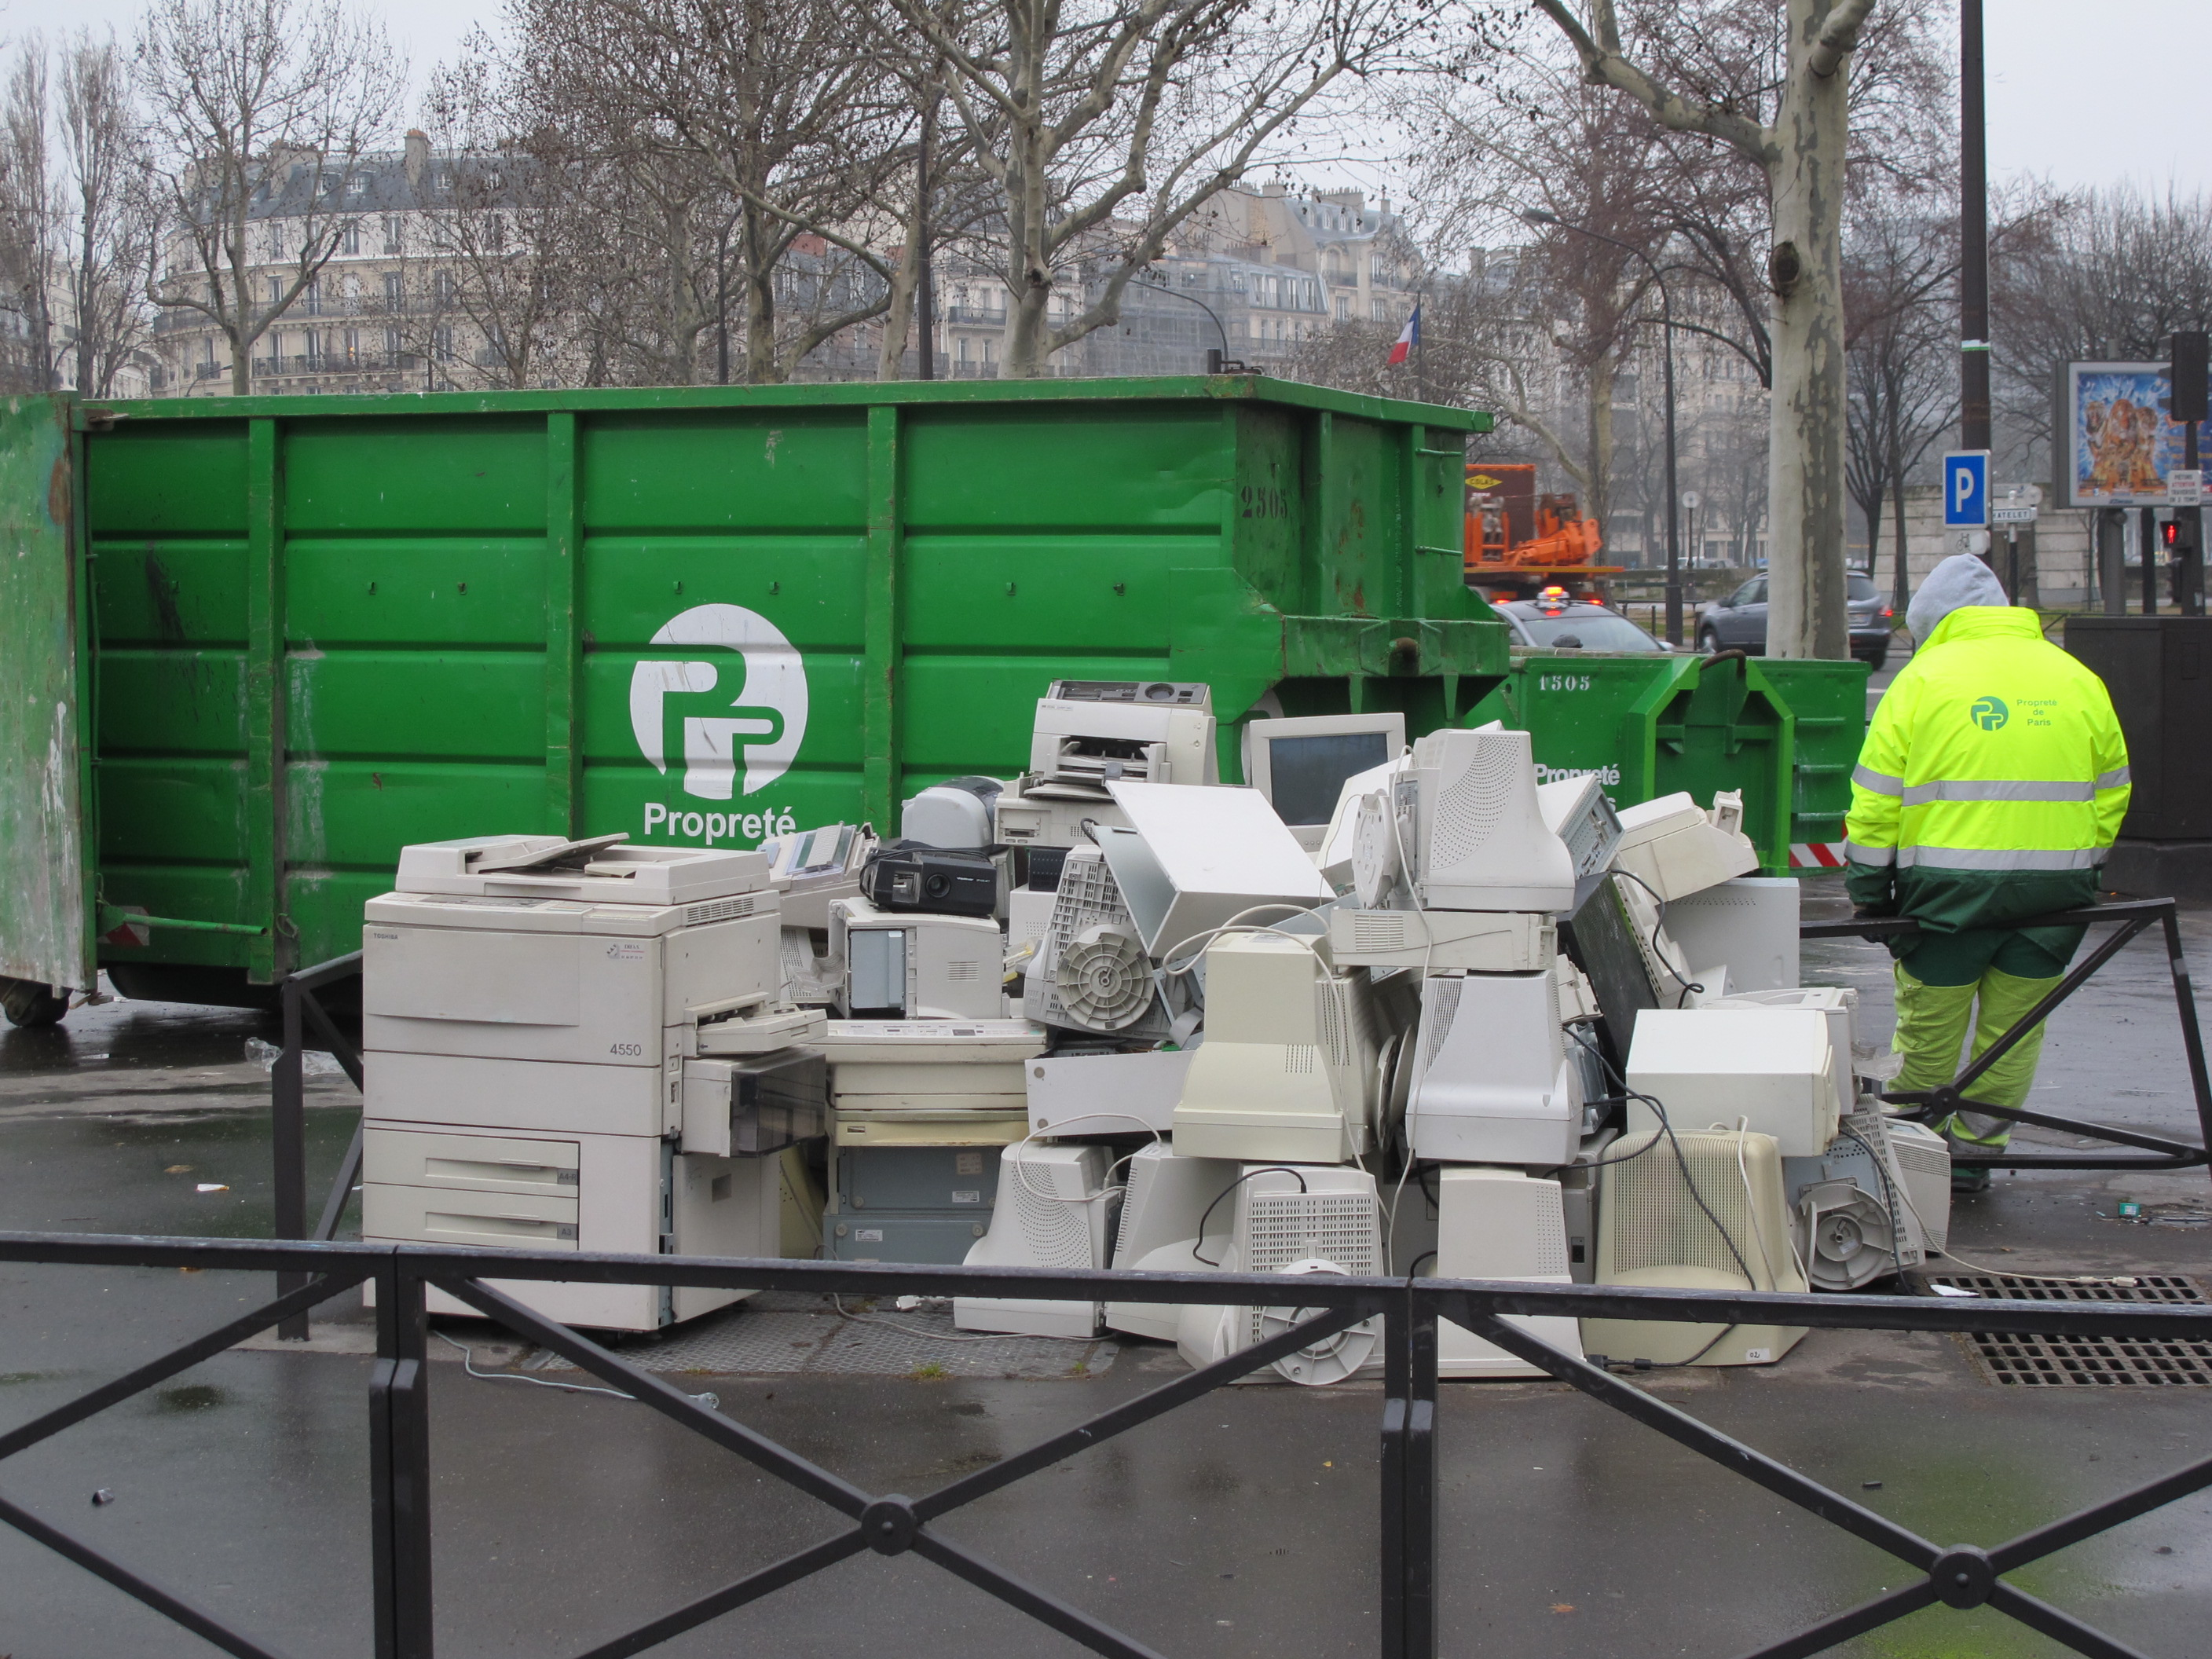 Digital waste management